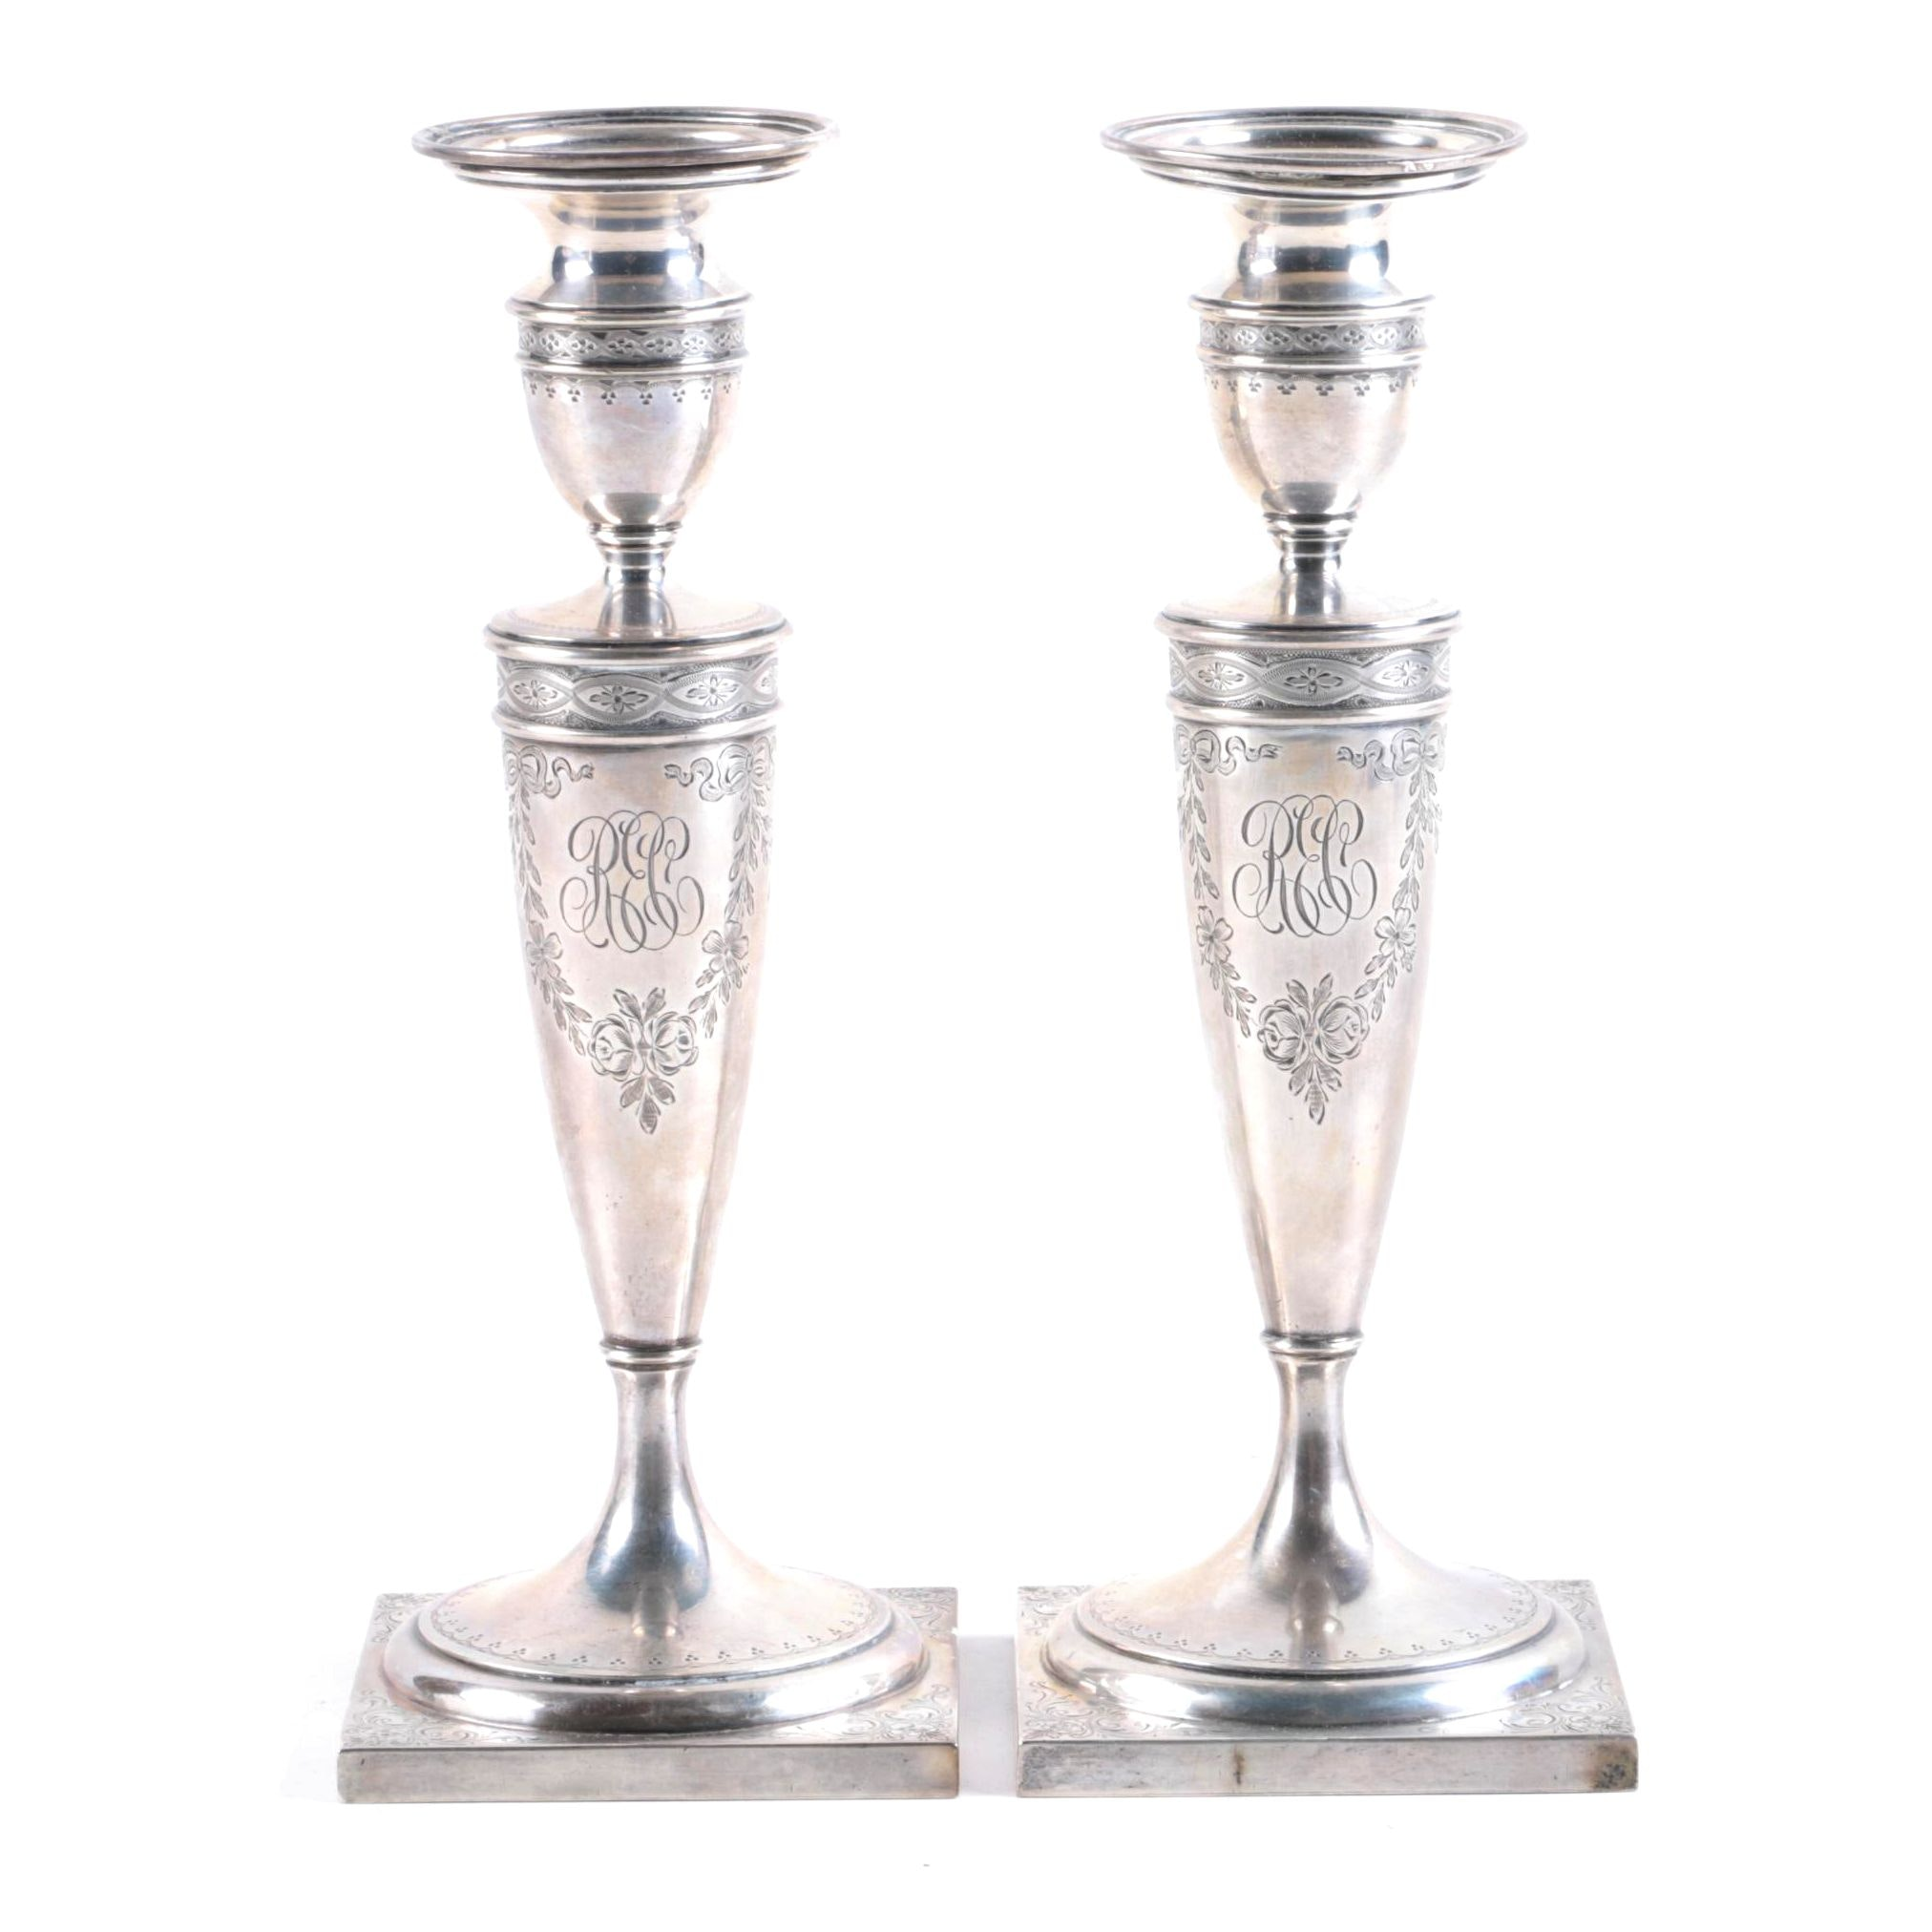 Pair of Gorham Engraved Sterling Silver Candlesticks